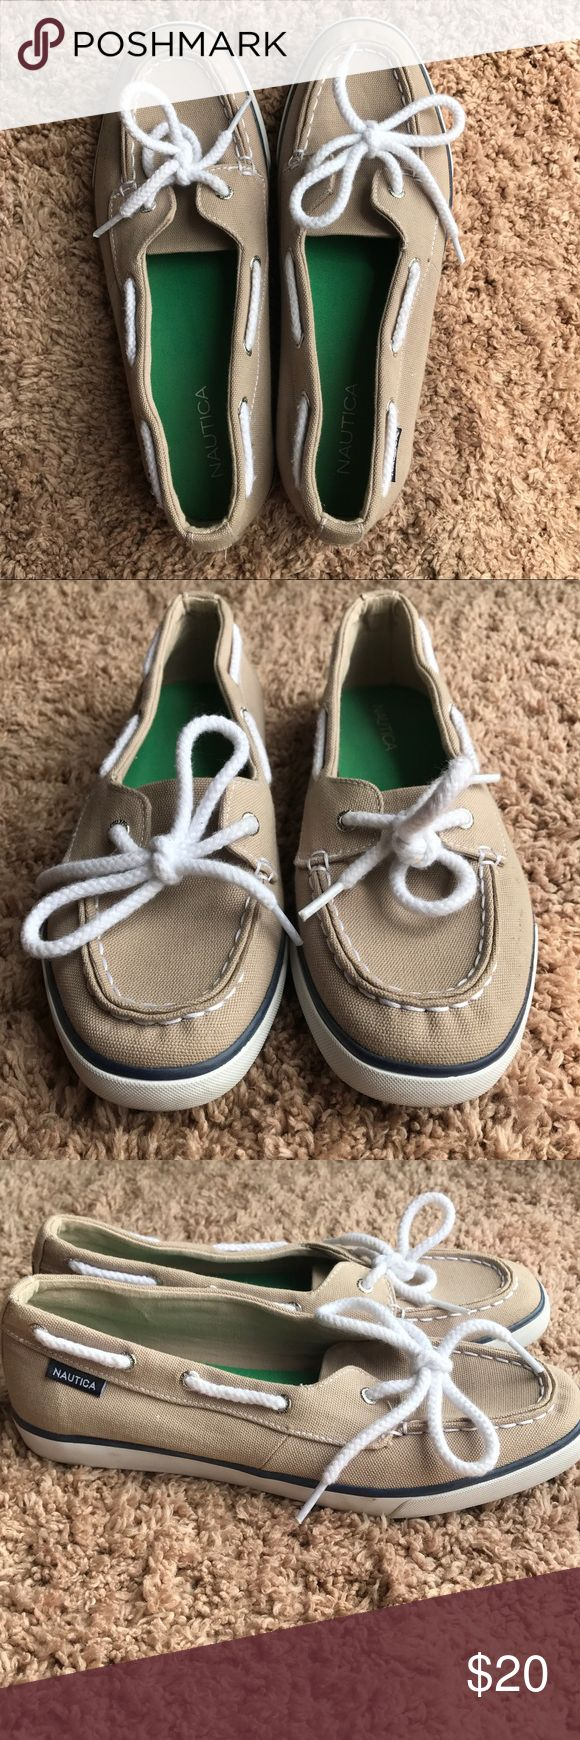 Women's Nautica Boat Shoes Women's Tan Nautica Boat Shoes. Shoes are a size 8 and have only been worn once! They are in great condition. Perfect for summertime. Looks great with a nautical look or just to dress up a casual outfit! Open to offers! 🌊 Nautica Shoes Sandals